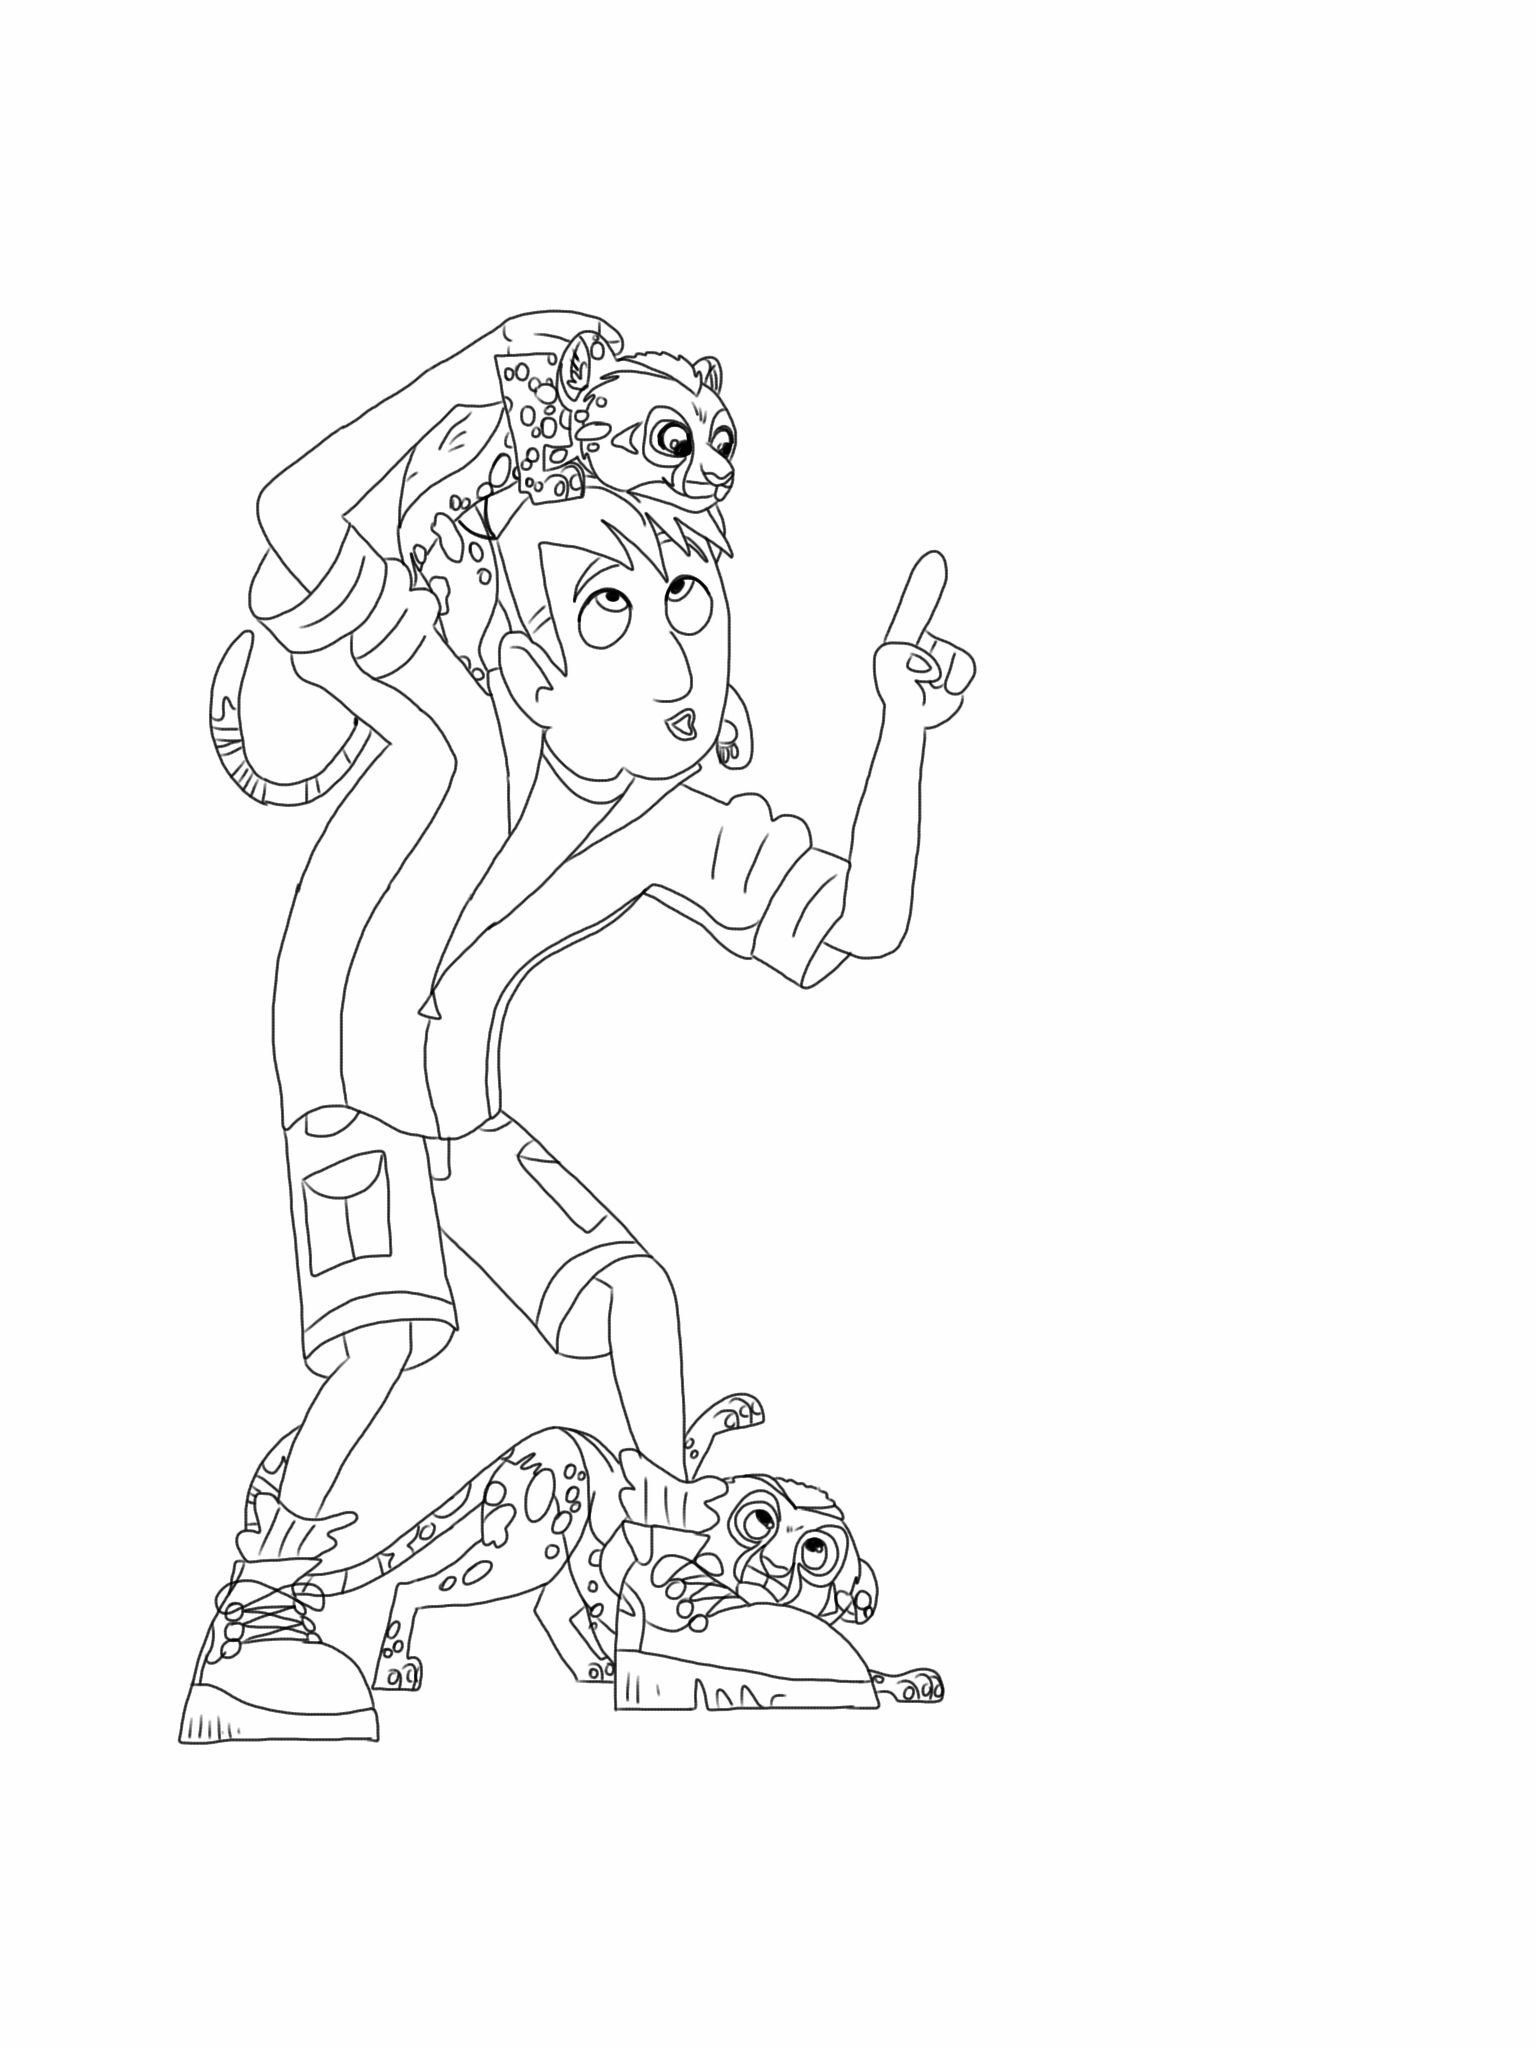 Wild Kratts Coloring Pages Fresh Cheetah Coloring Pages For Kids Christmas Coloring Pages Wild Kratts Cartoon Coloring Pages